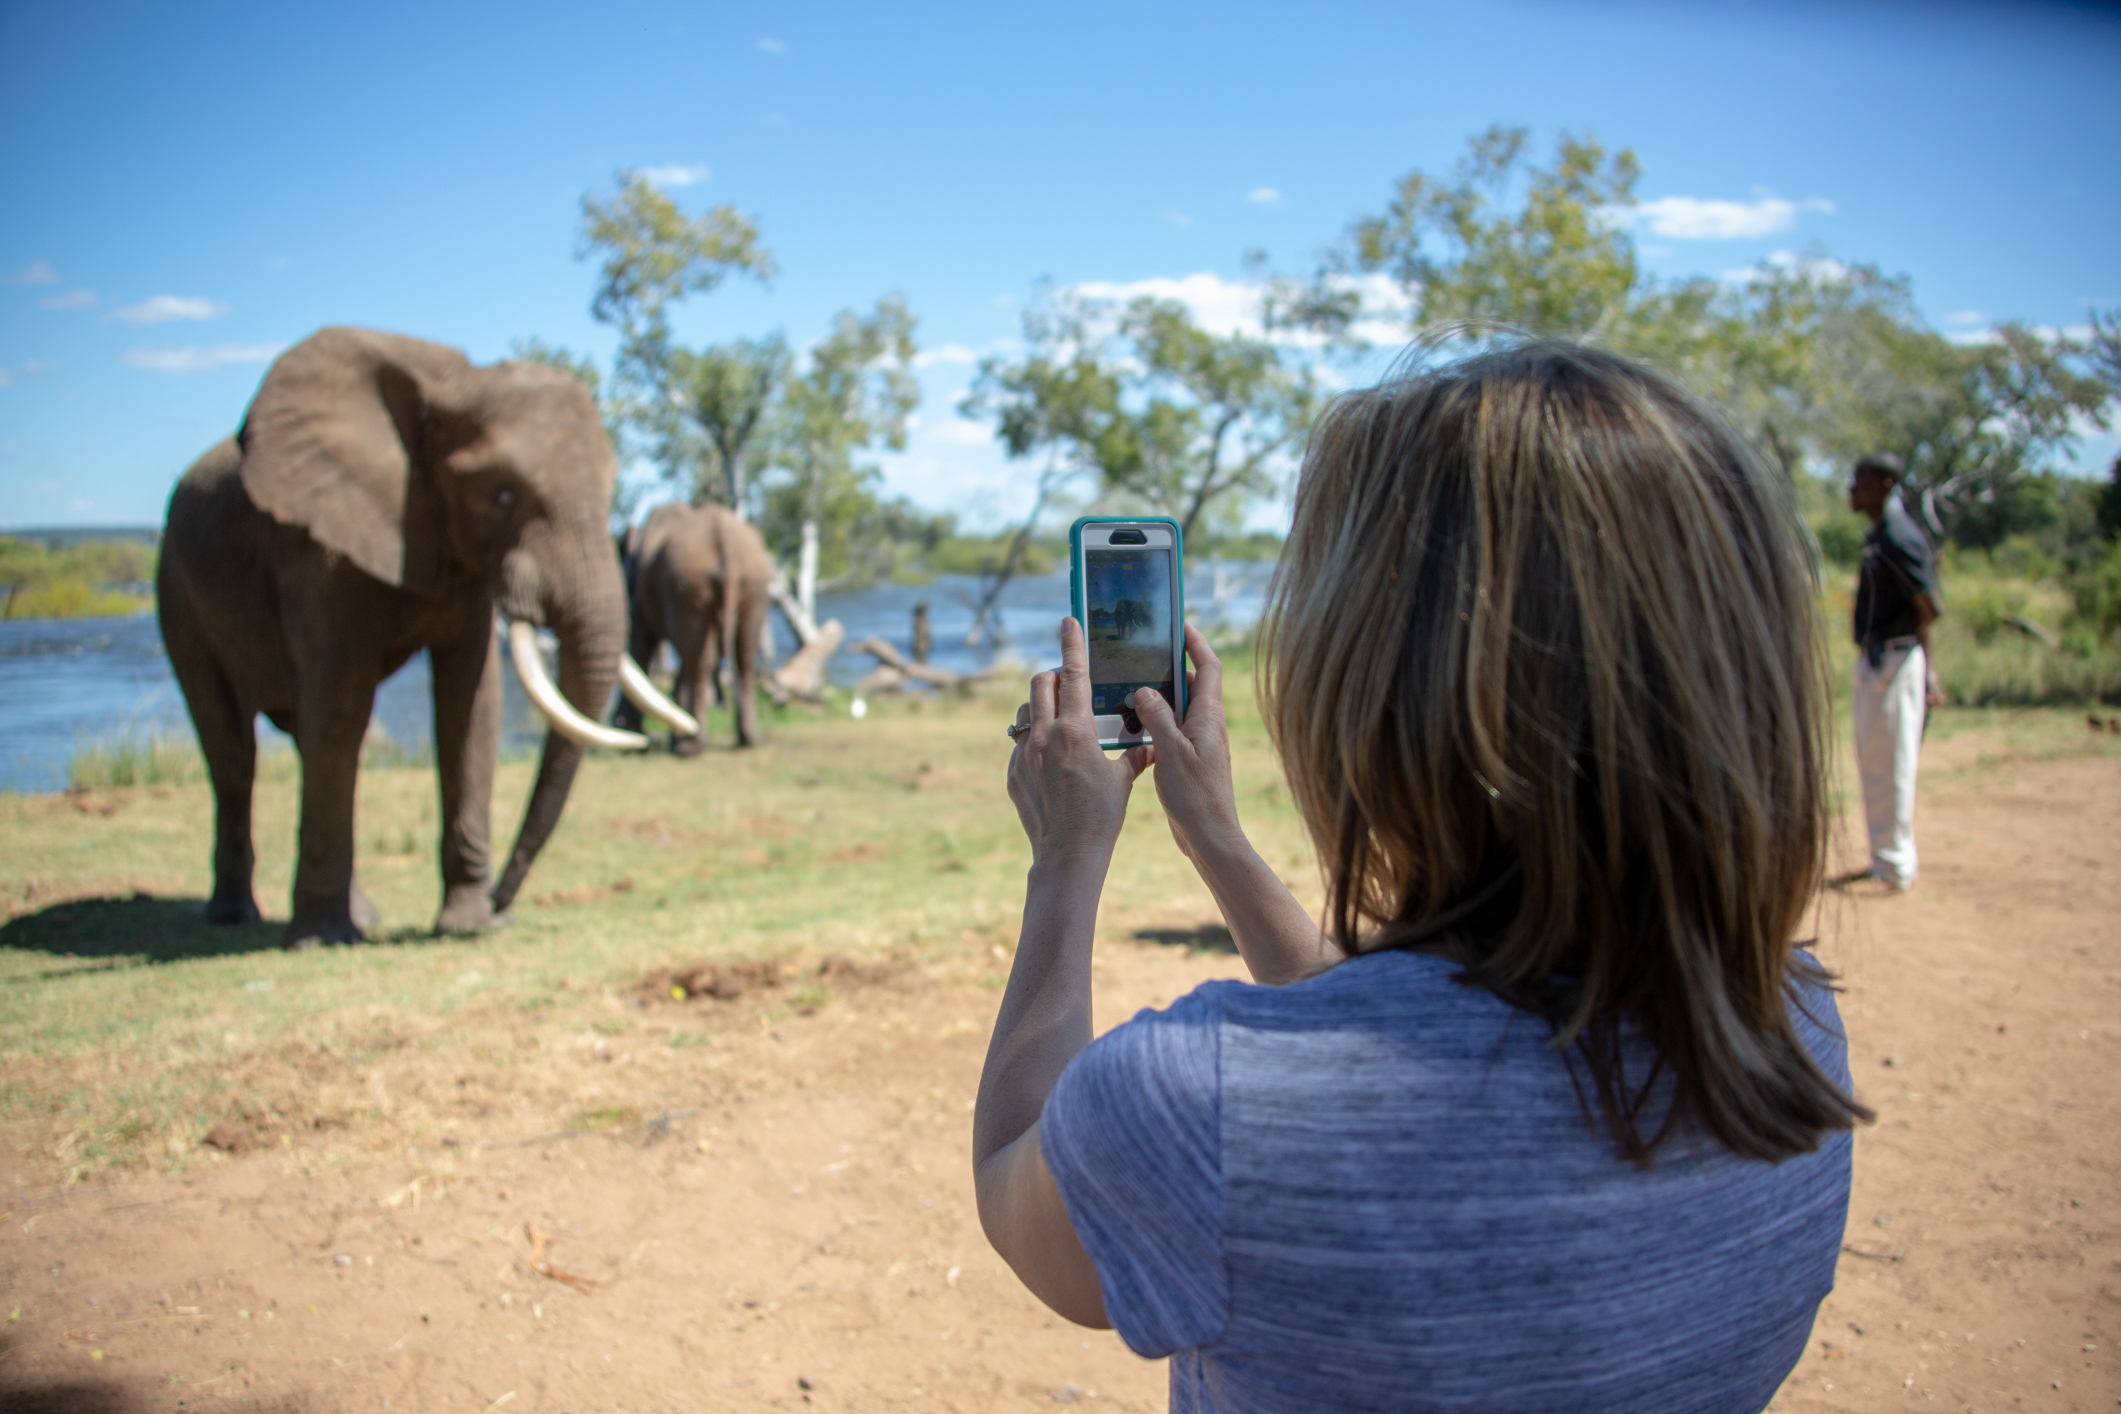 Woman taking picture during elephant safari on Corporate Incentive Trip | Global agency, BCD Meetings & Events